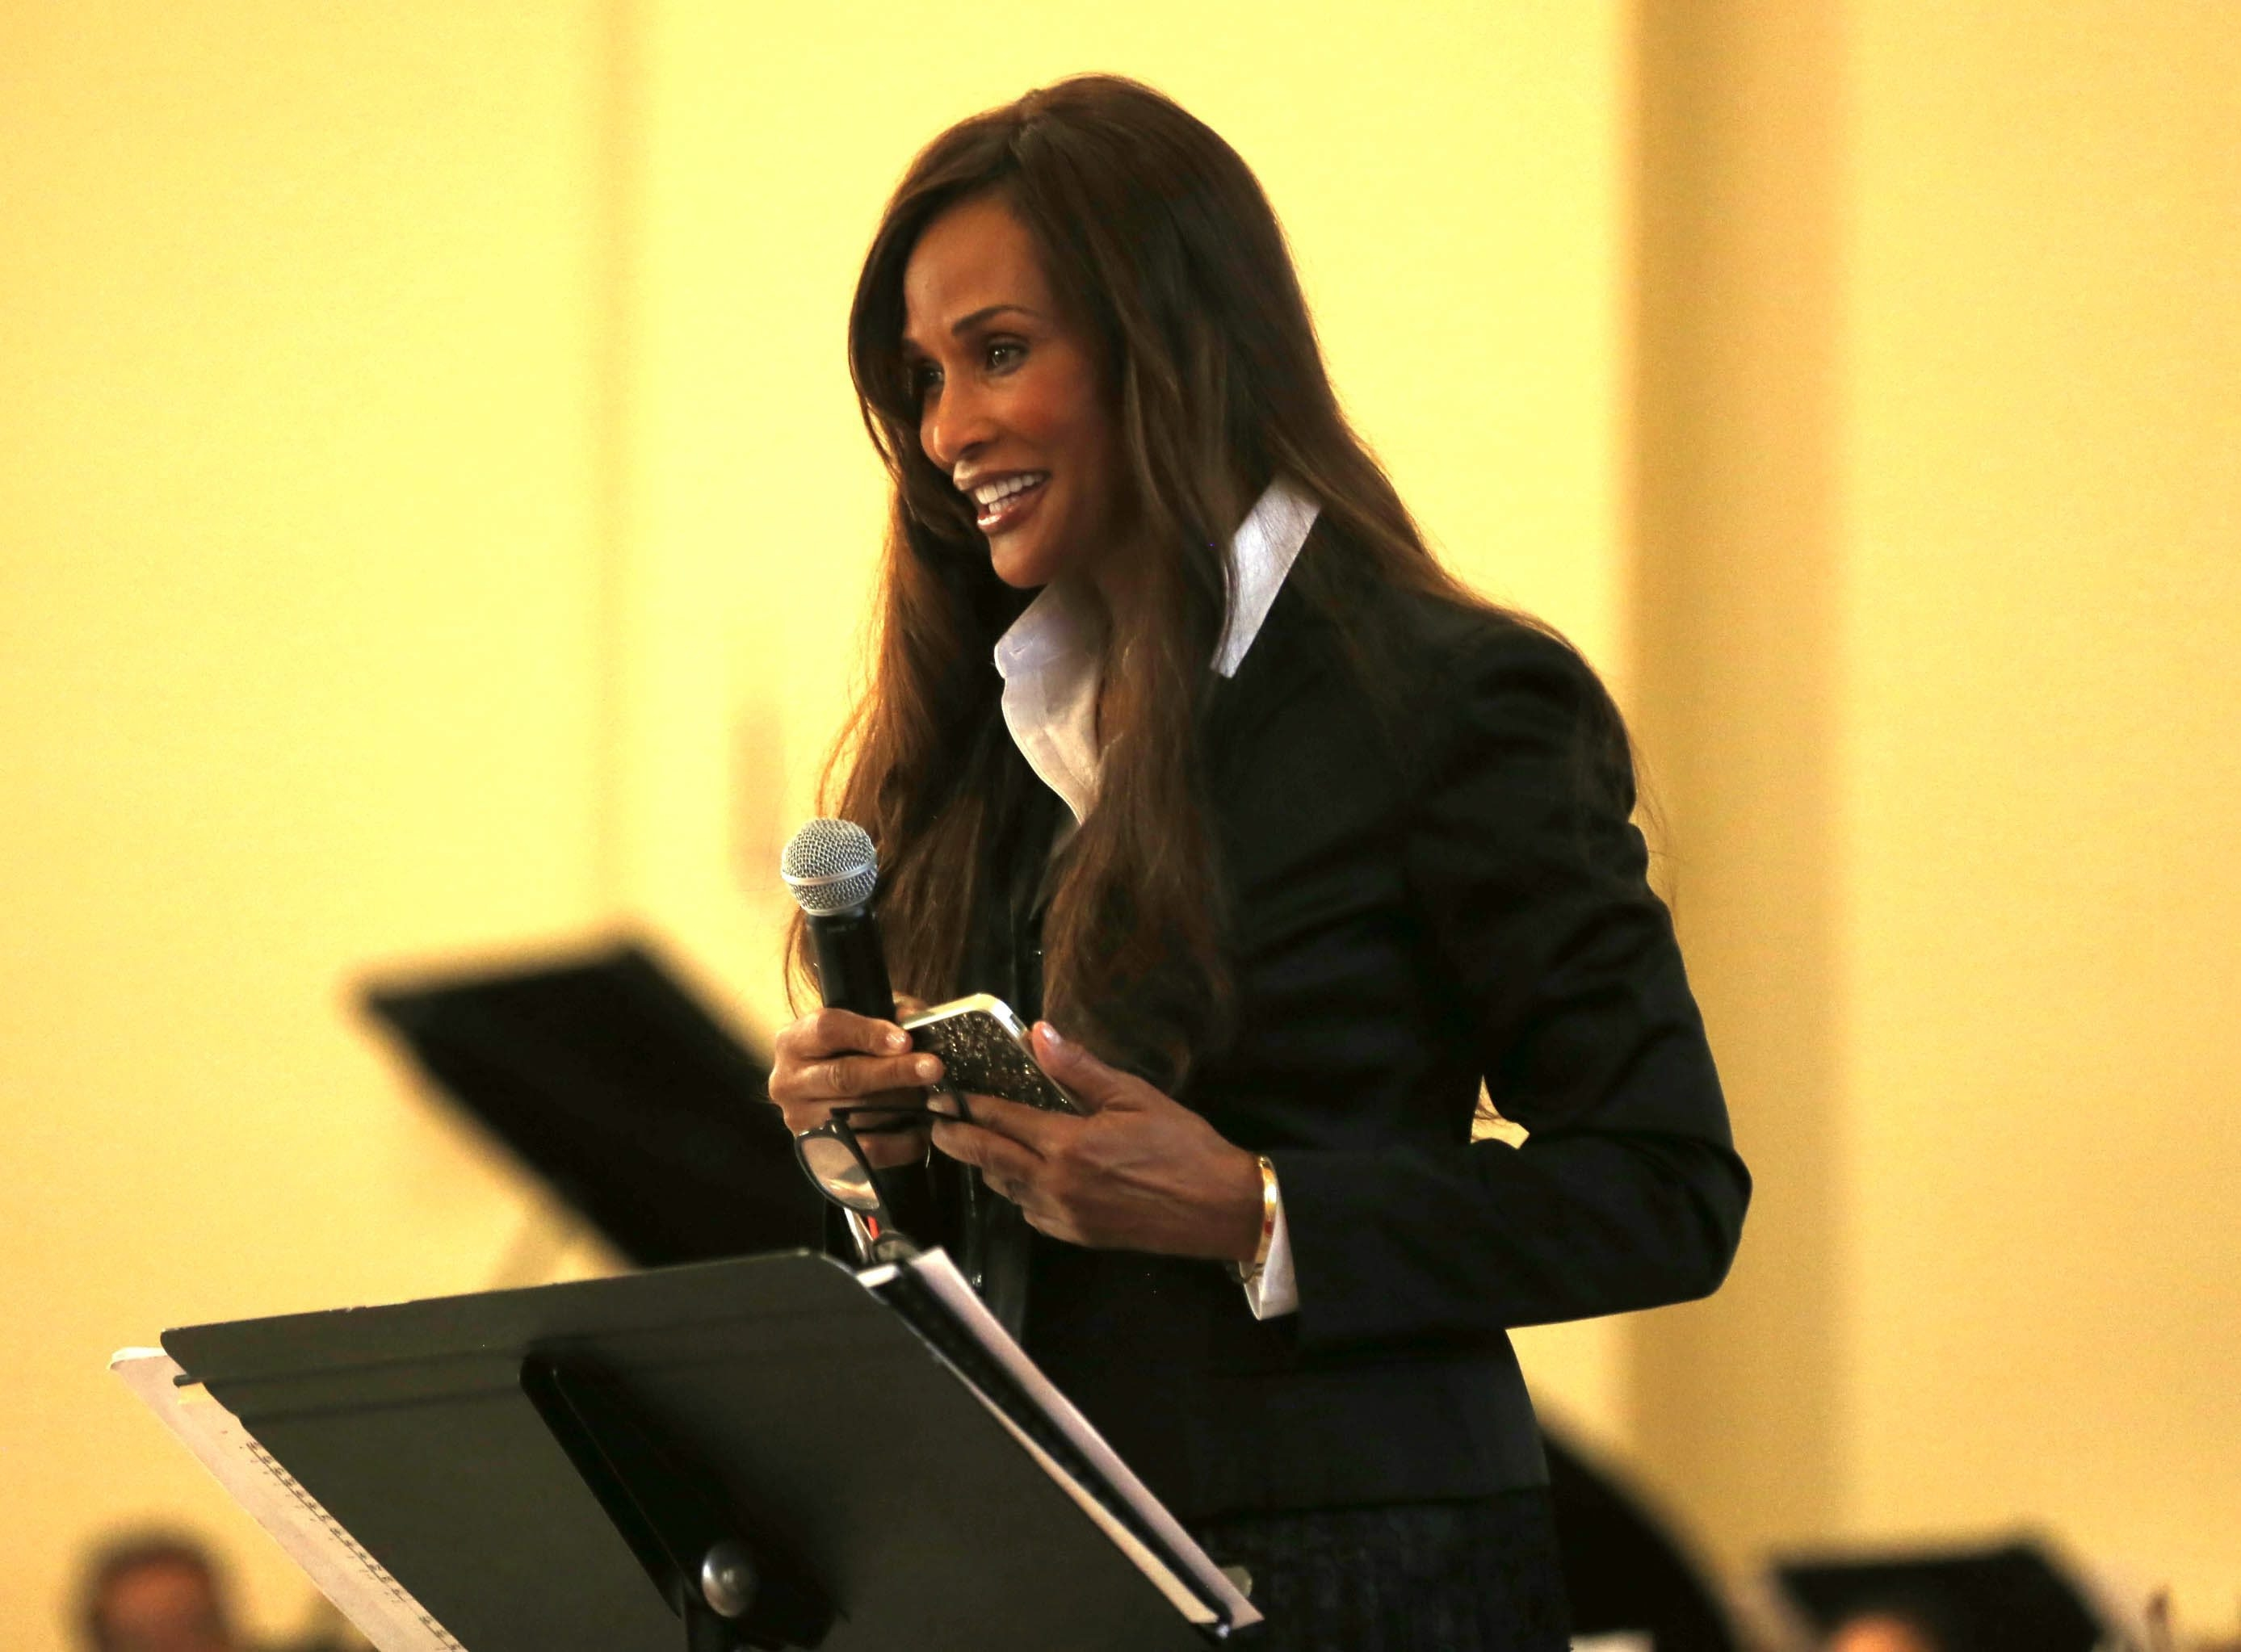 Model and actress Beverly Johnson, who was born in Buffalo, is one of more than 50 women who have accused Bill Cosby of sexual assault or abuse.